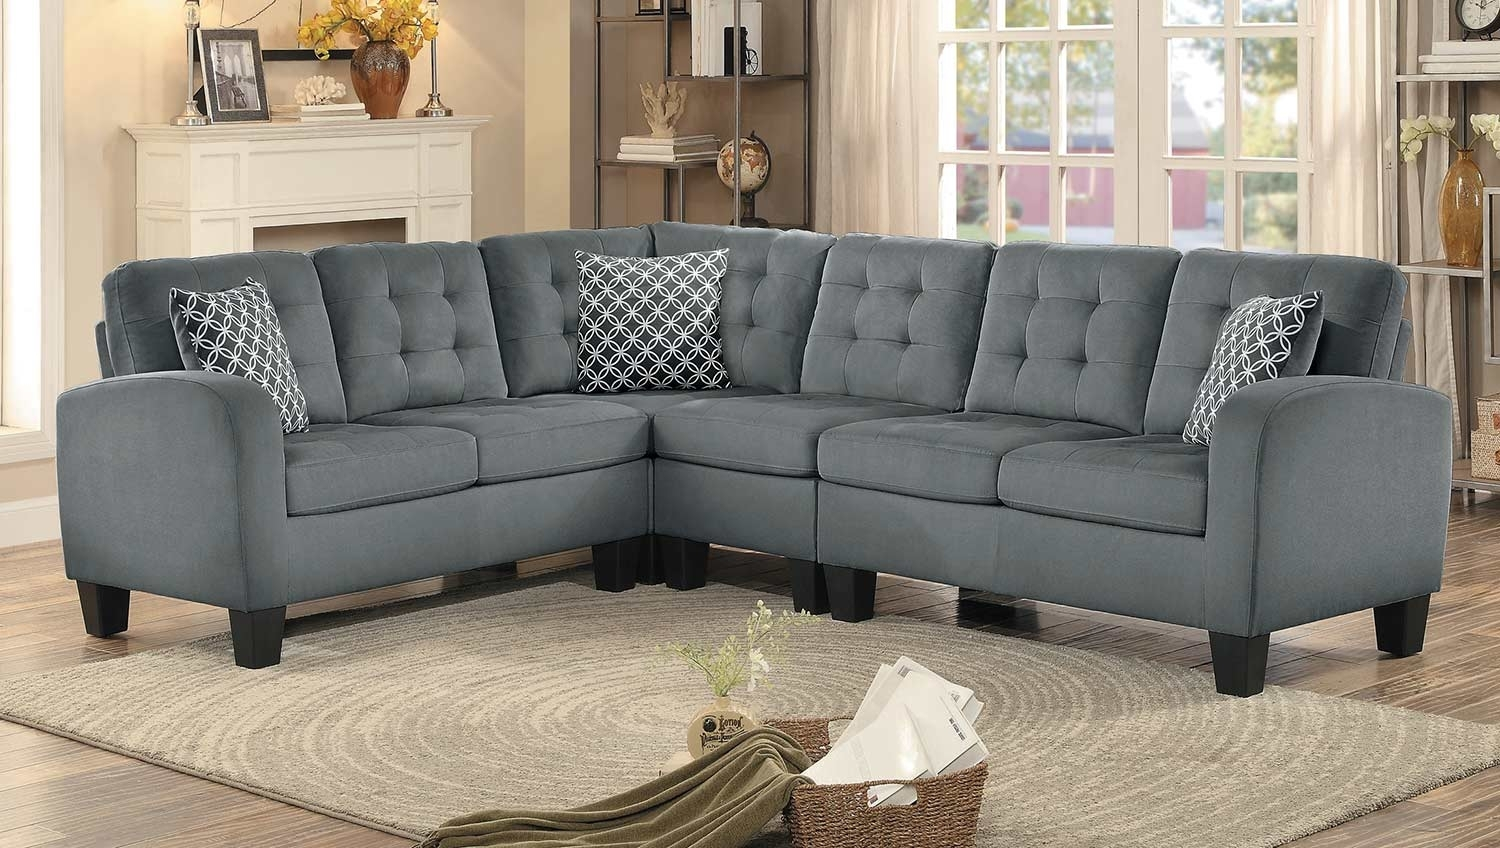 Sofa : Homelegance Sinclair Reversible Sectional Sofa Gray Fabric With Regard To Clearance Sectional Sofas (Image 10 of 10)